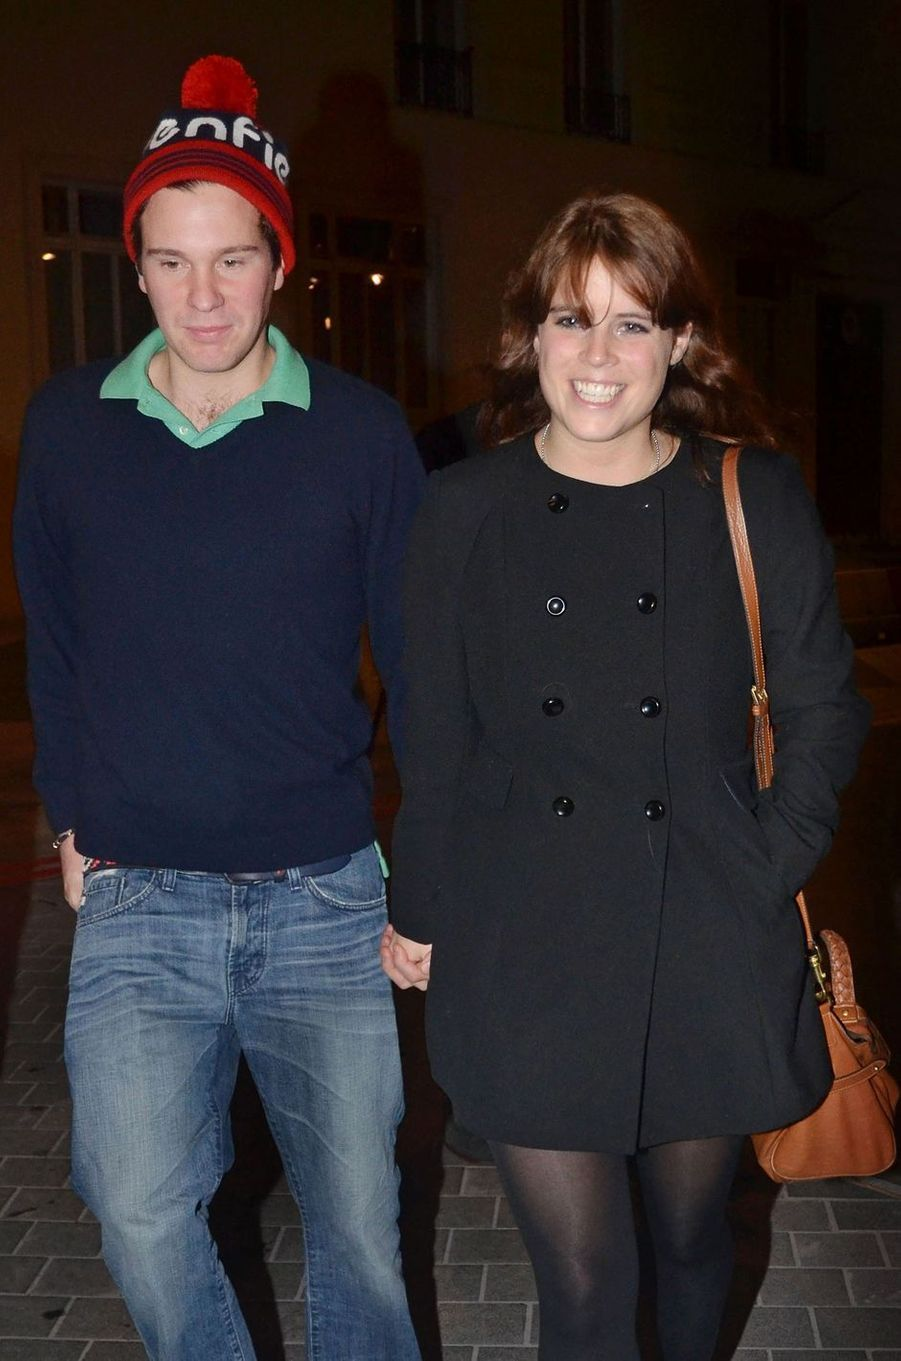 La princesse Eugenie d'York et Jack Brooksbank, le 22 octobre 2011